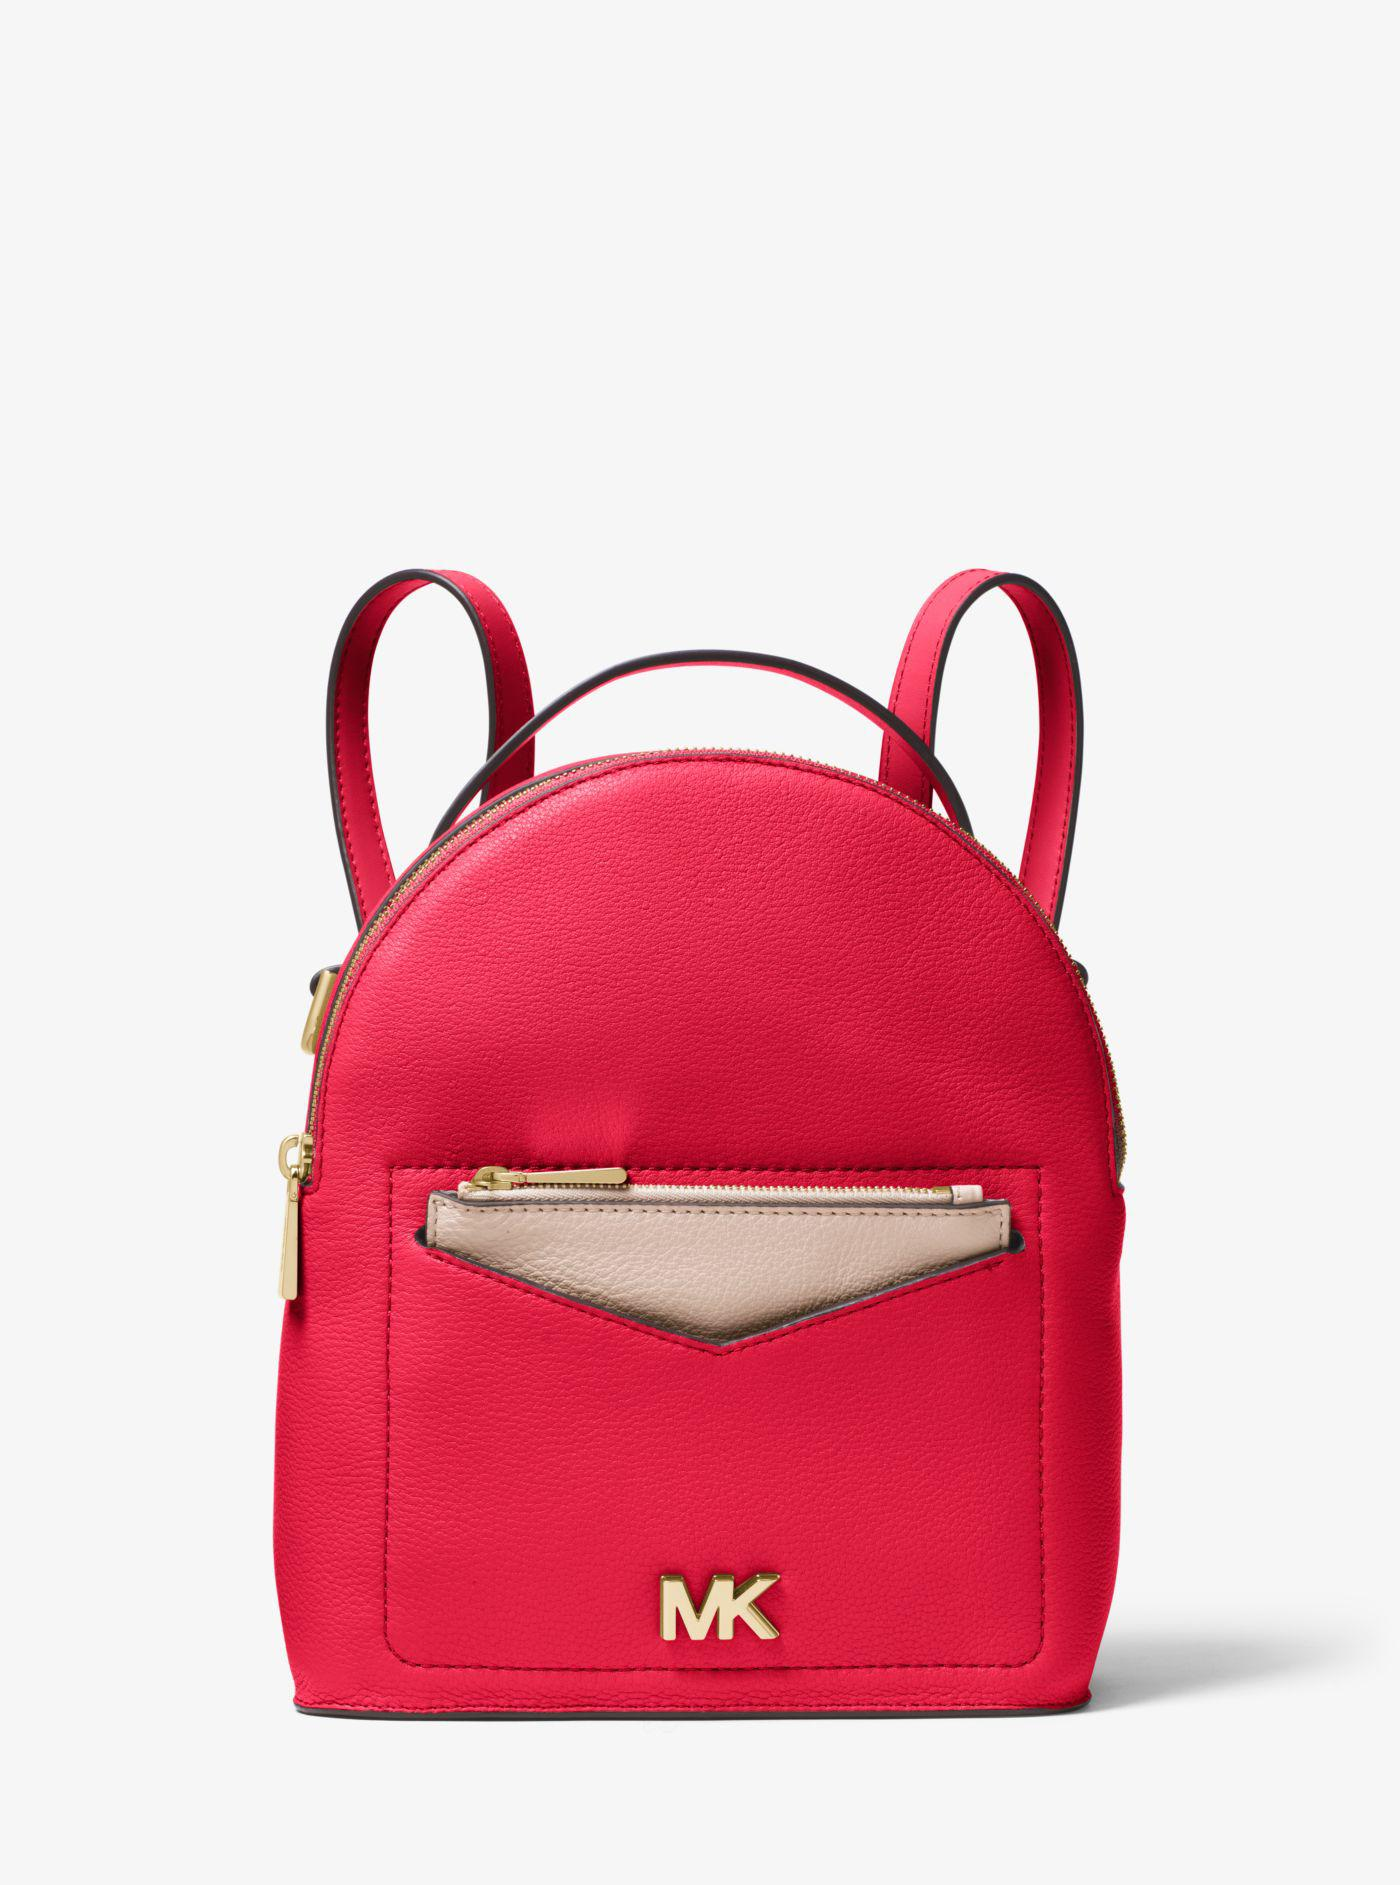 e5708c0a4bf6 Michael Kors Jessa Small Pebbled Leather Convertible Backpack in ...